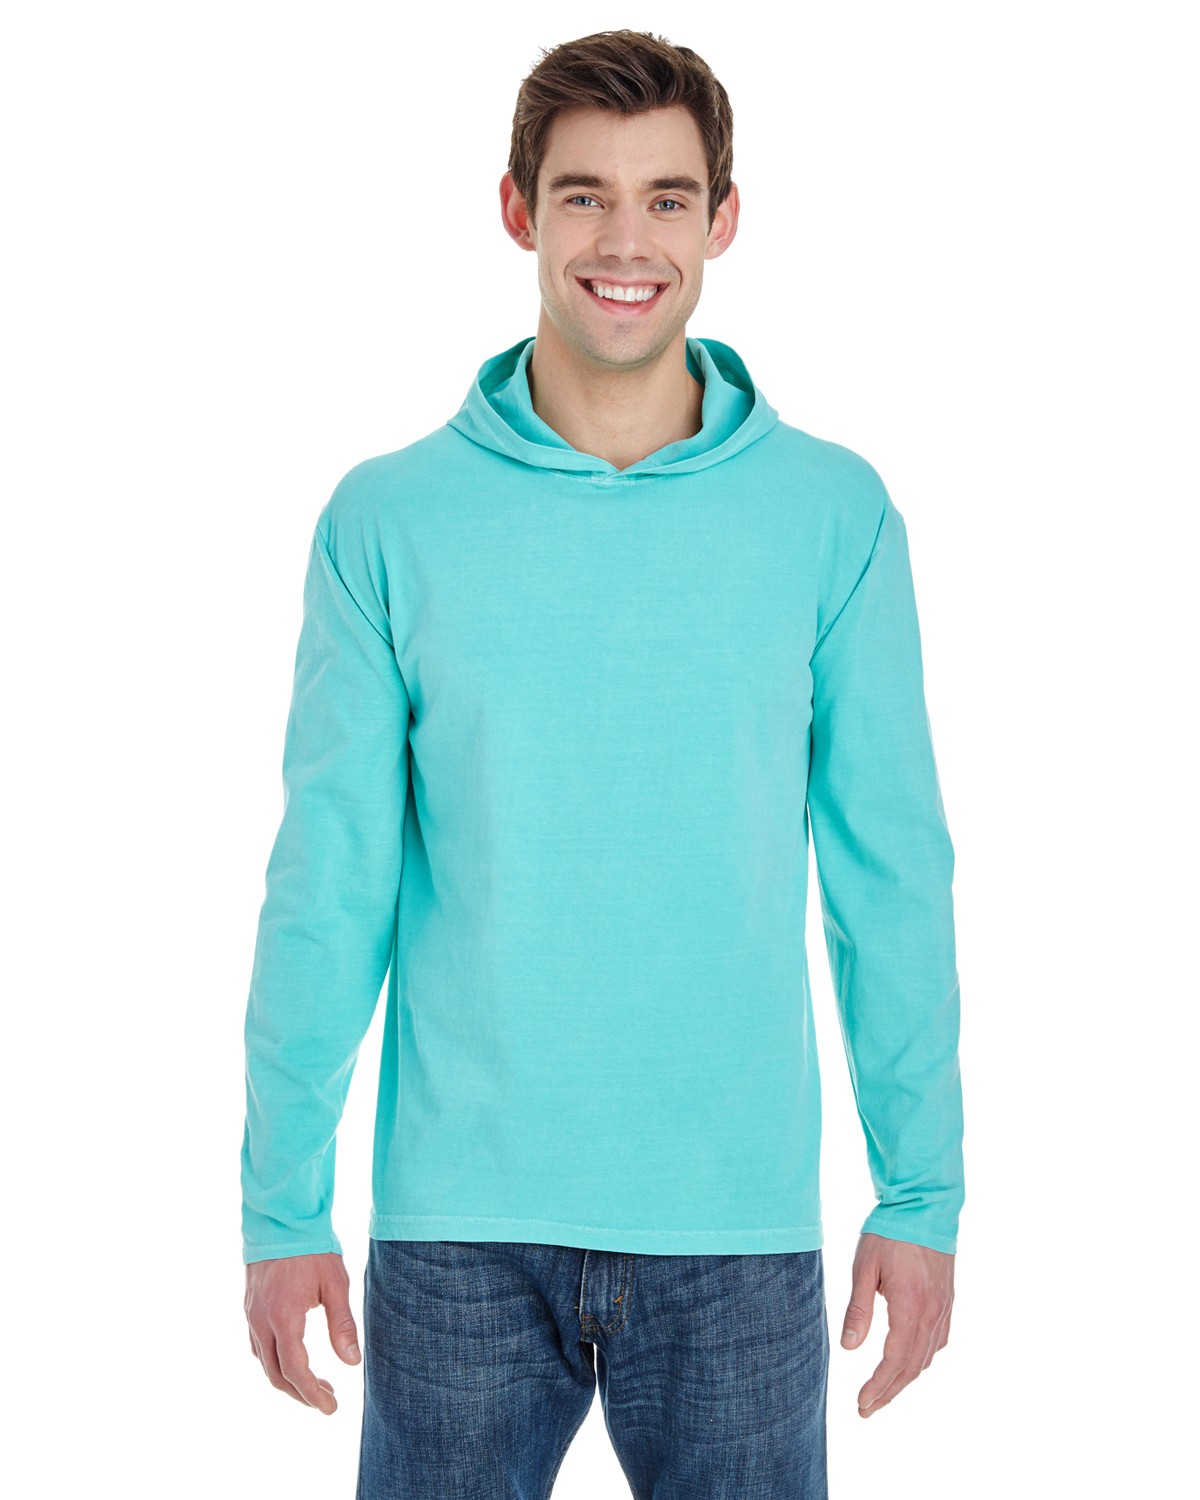 4900 Comfort Colors CHALKY MINT